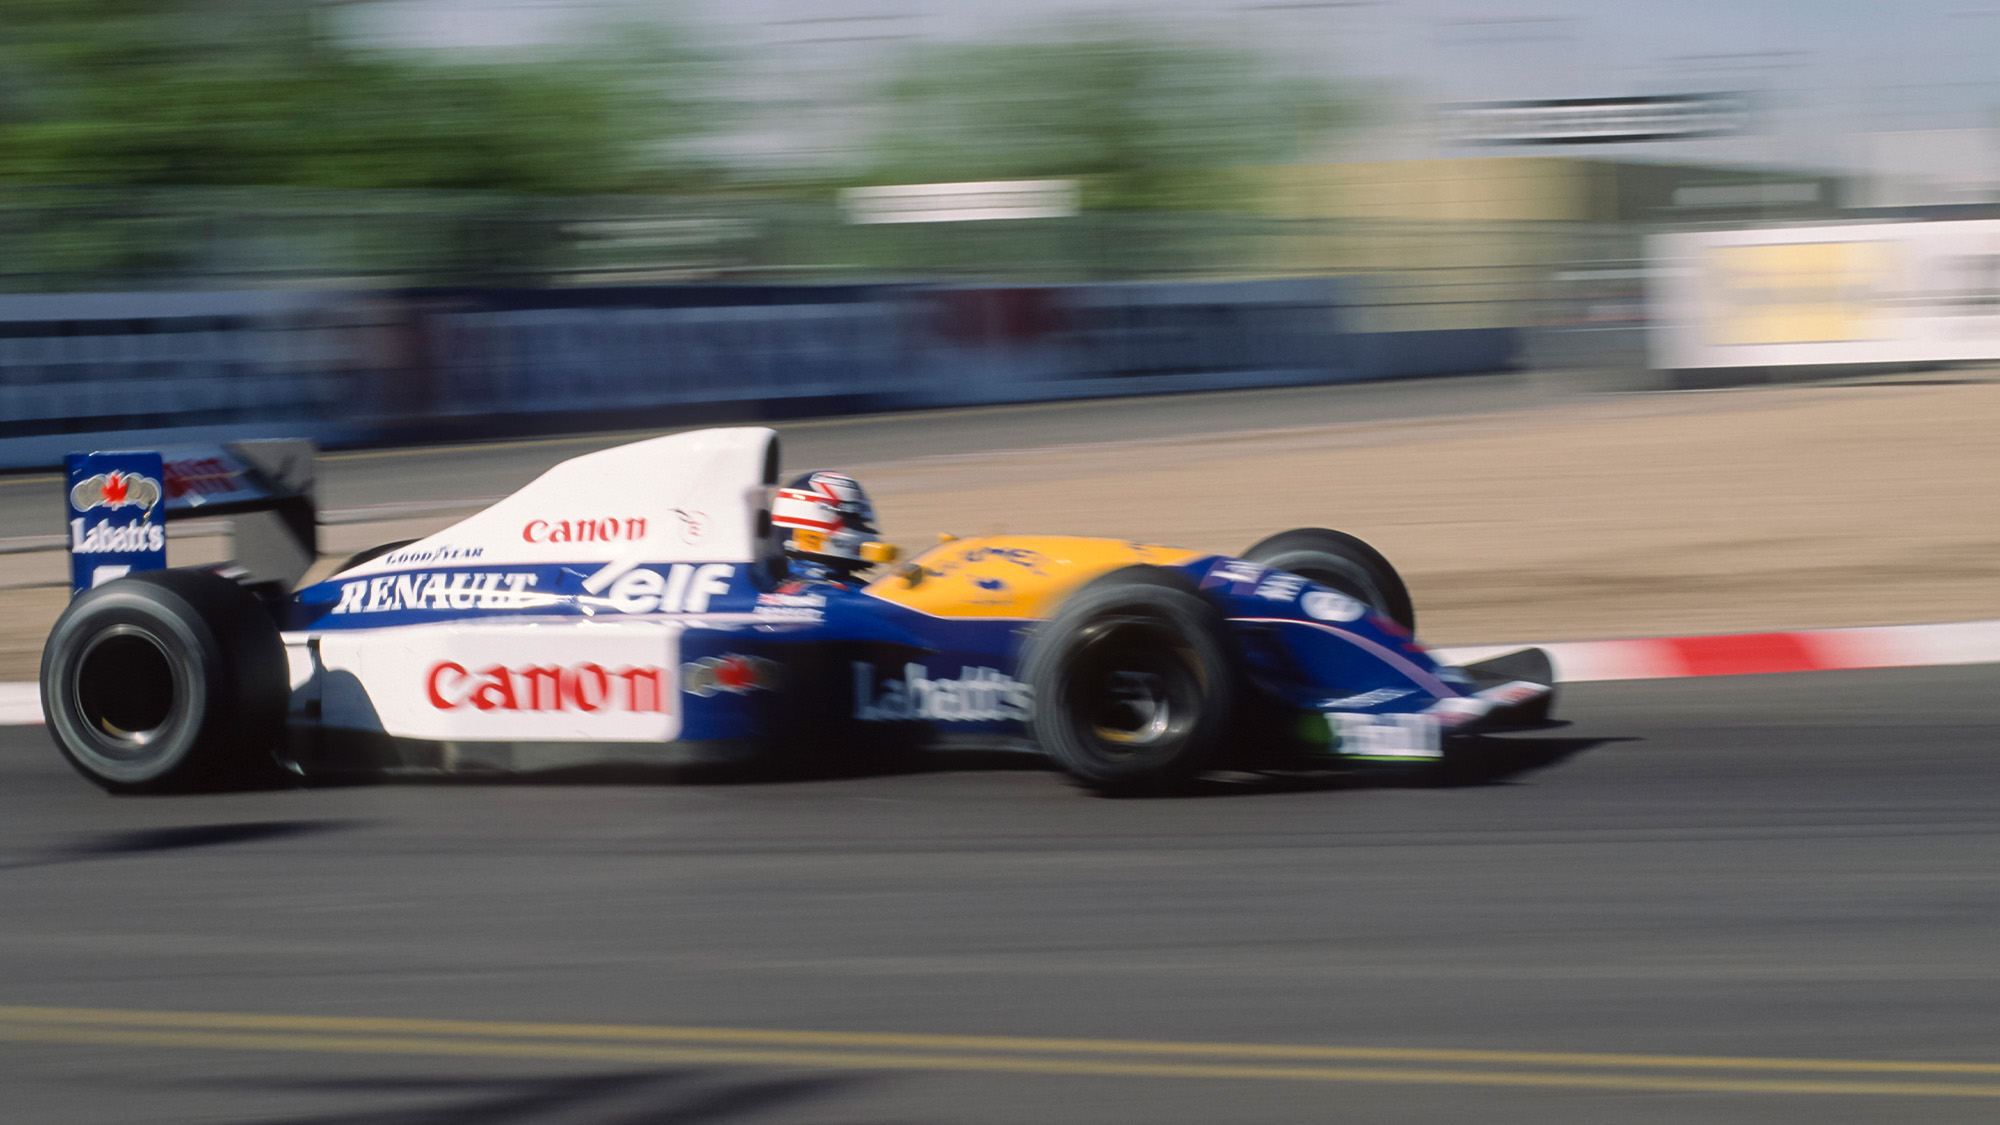 Nigel Mansell in the 1991 US Grand Prix